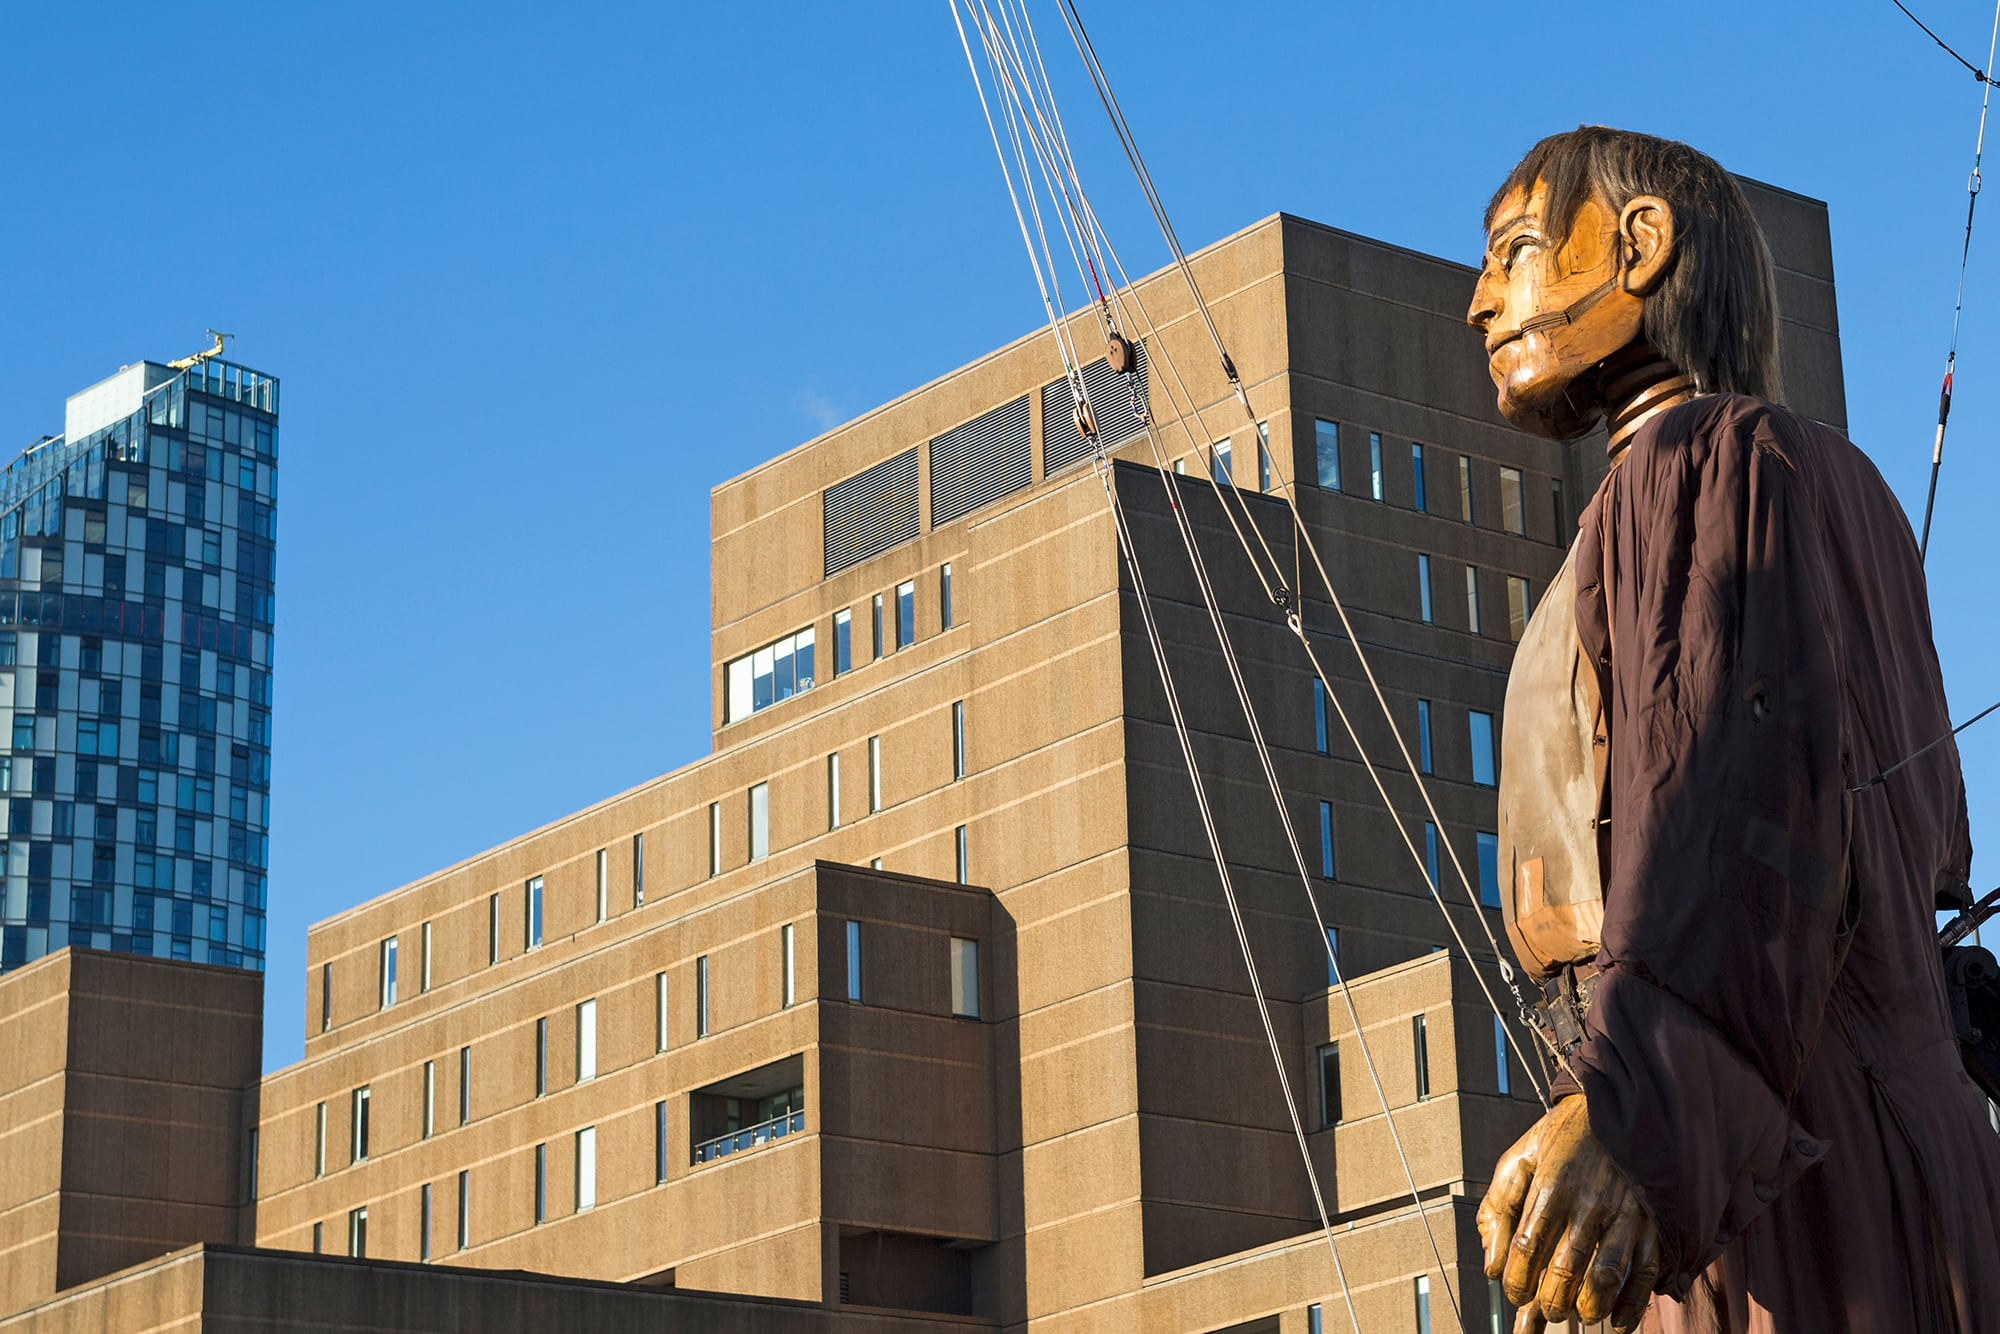 Standing as tall as buildings, Big Giant explores Liverpool